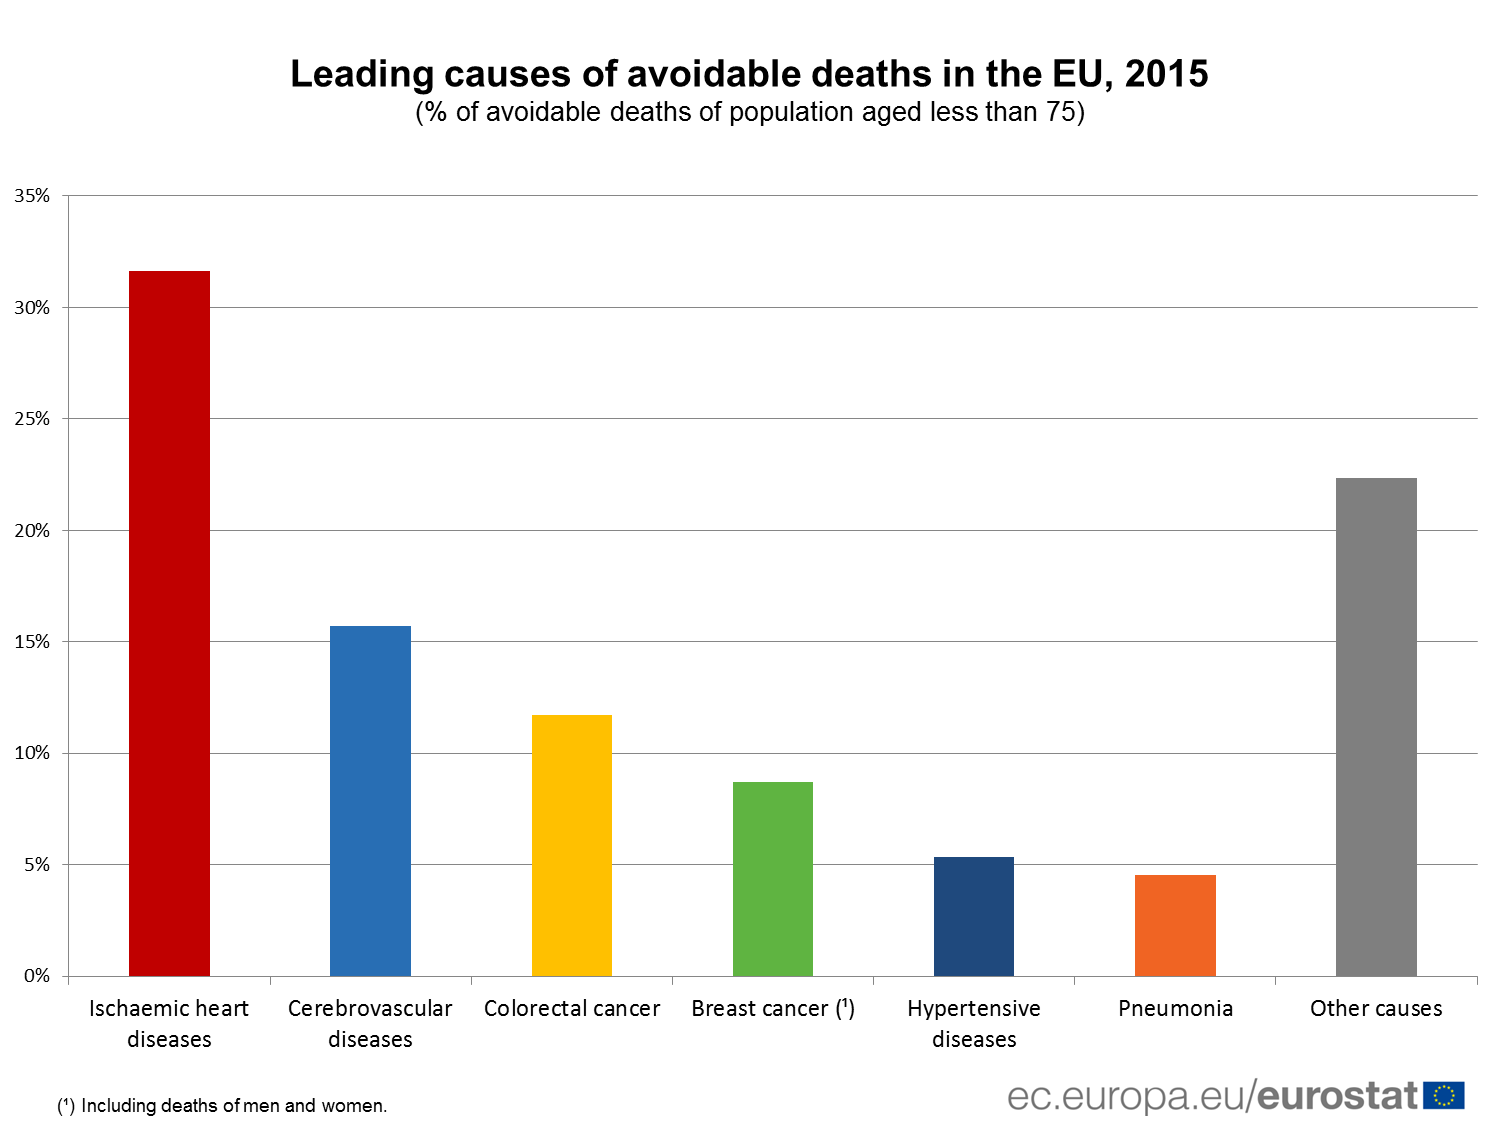 Leading causes of avoidable deaths in the EU, 2015